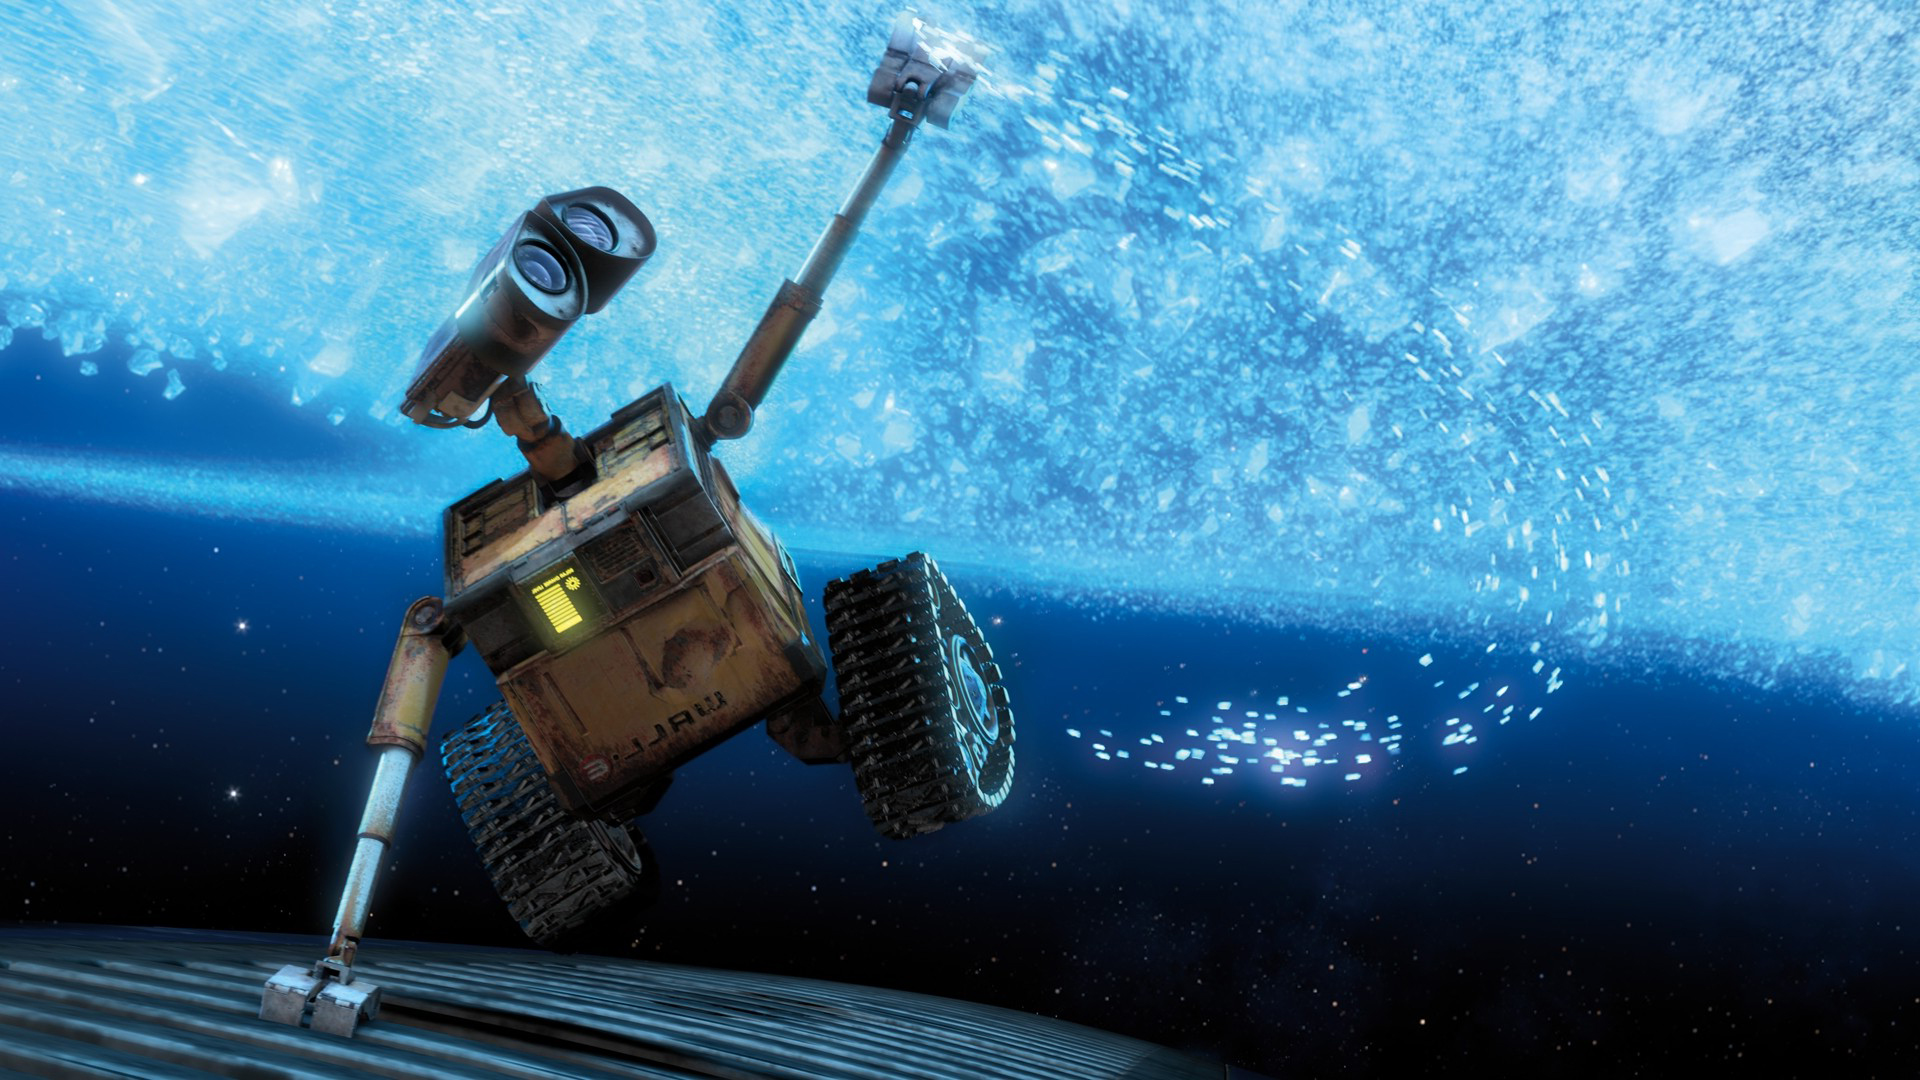 Cute Black And White Disney Desktop Wallpapers Download Wall E Wallpaper Gallery